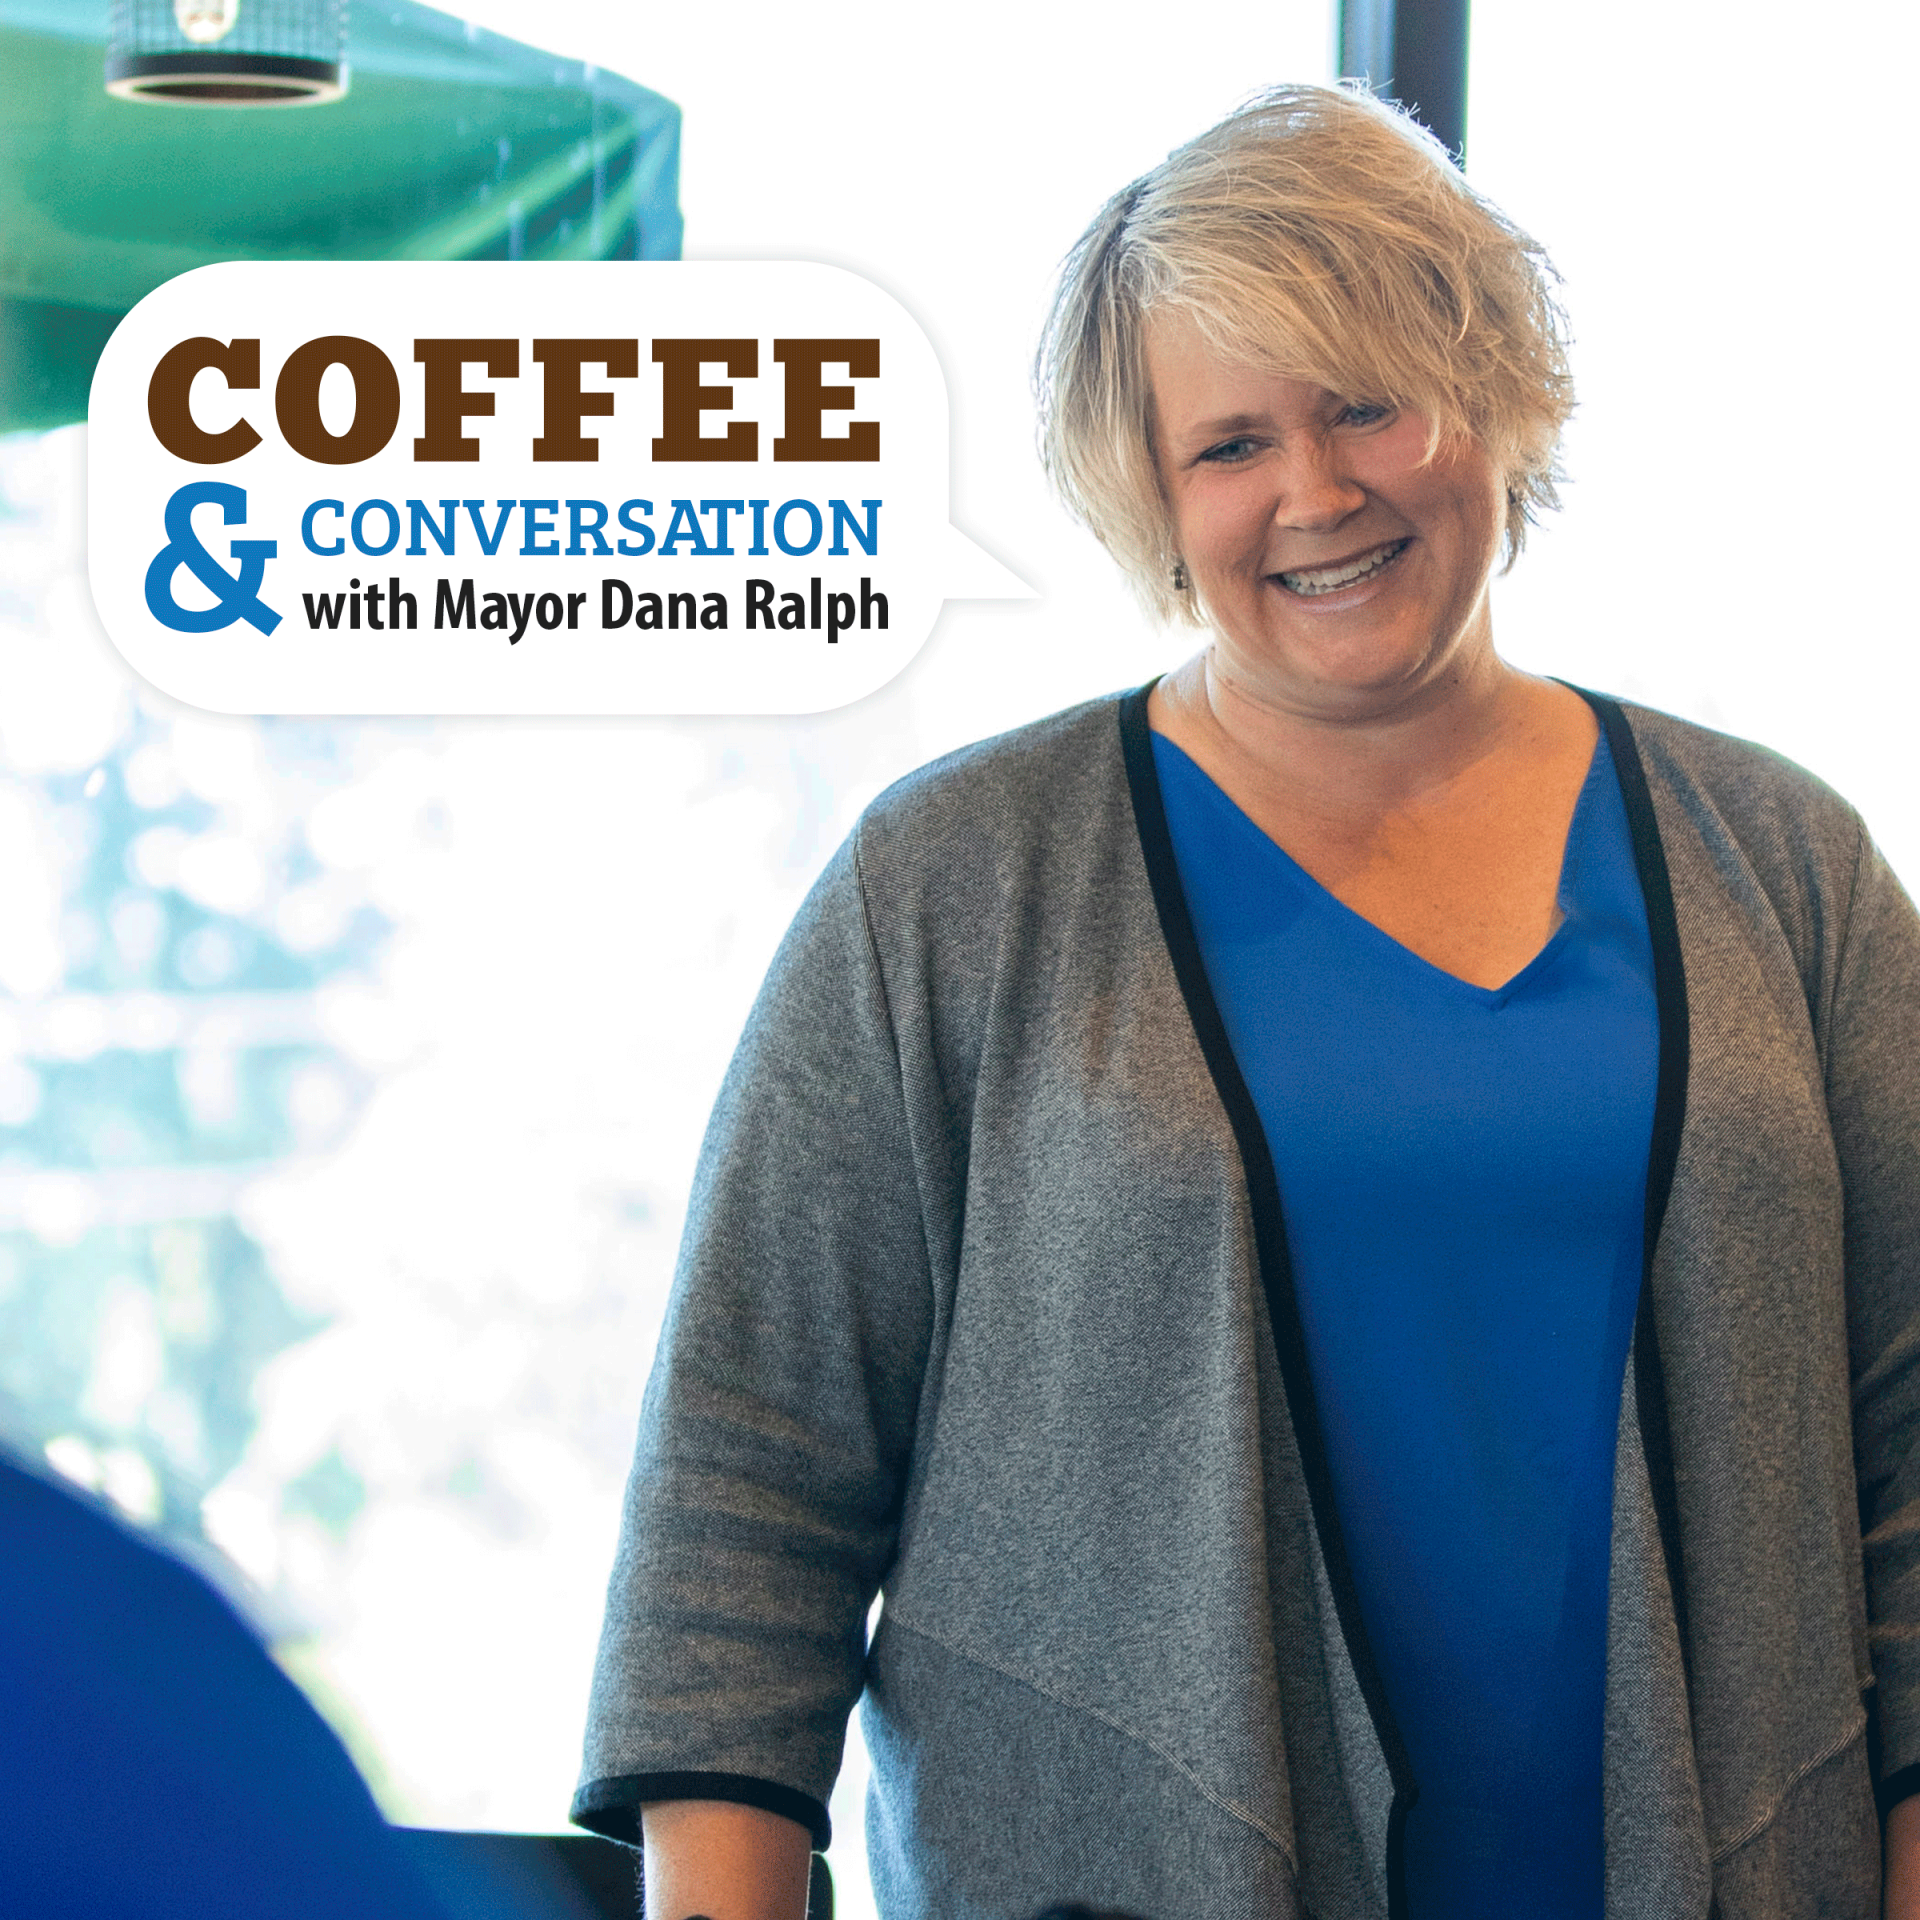 Join Mayor Dana Ralph for Coffee & Conversation on Dec. 3, 2019 at the Kent Senior Center.